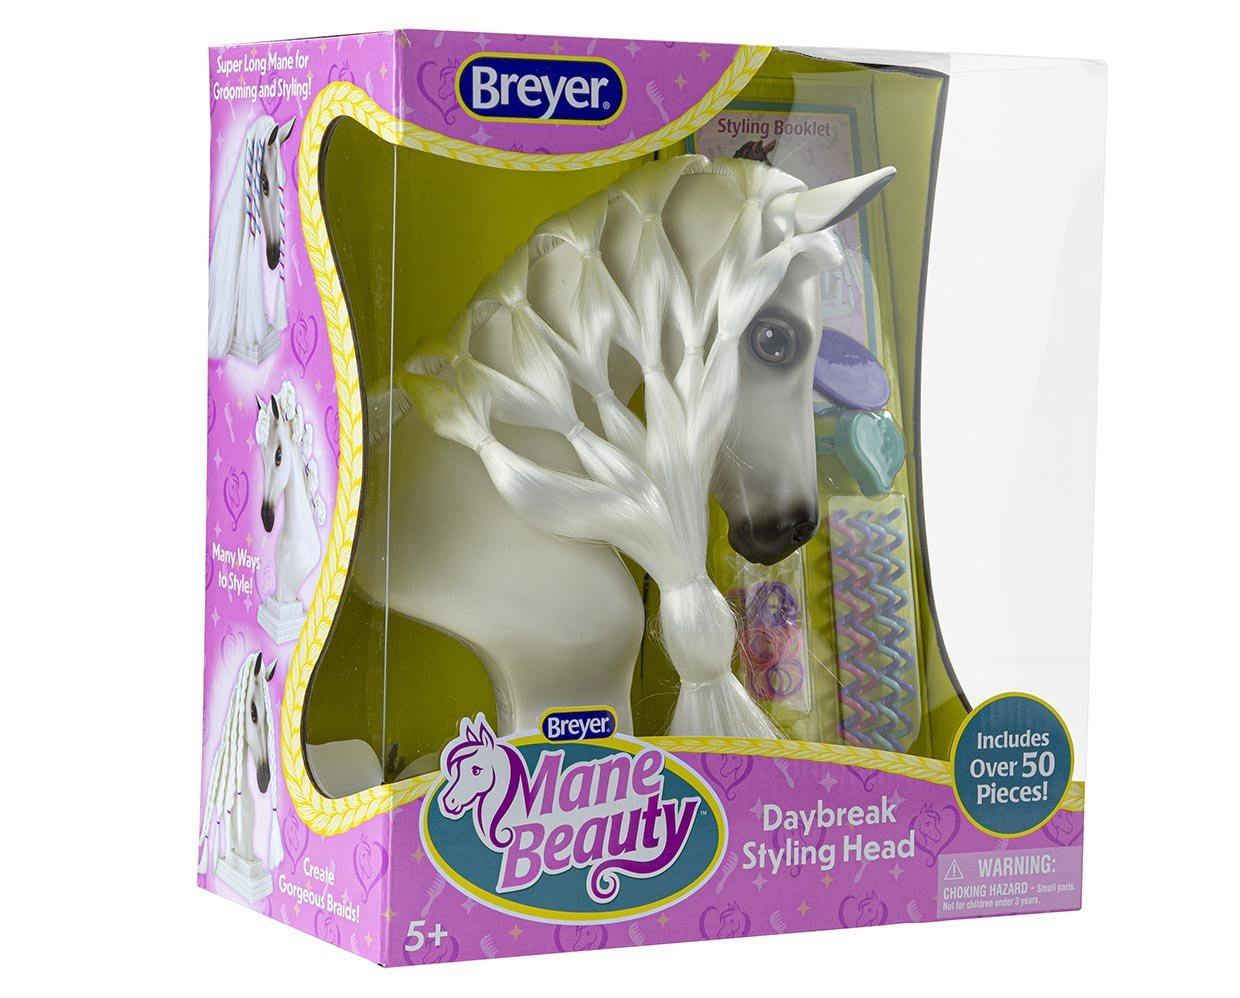 BREYER Horses #7404 Daybreak Styling Head NEW!